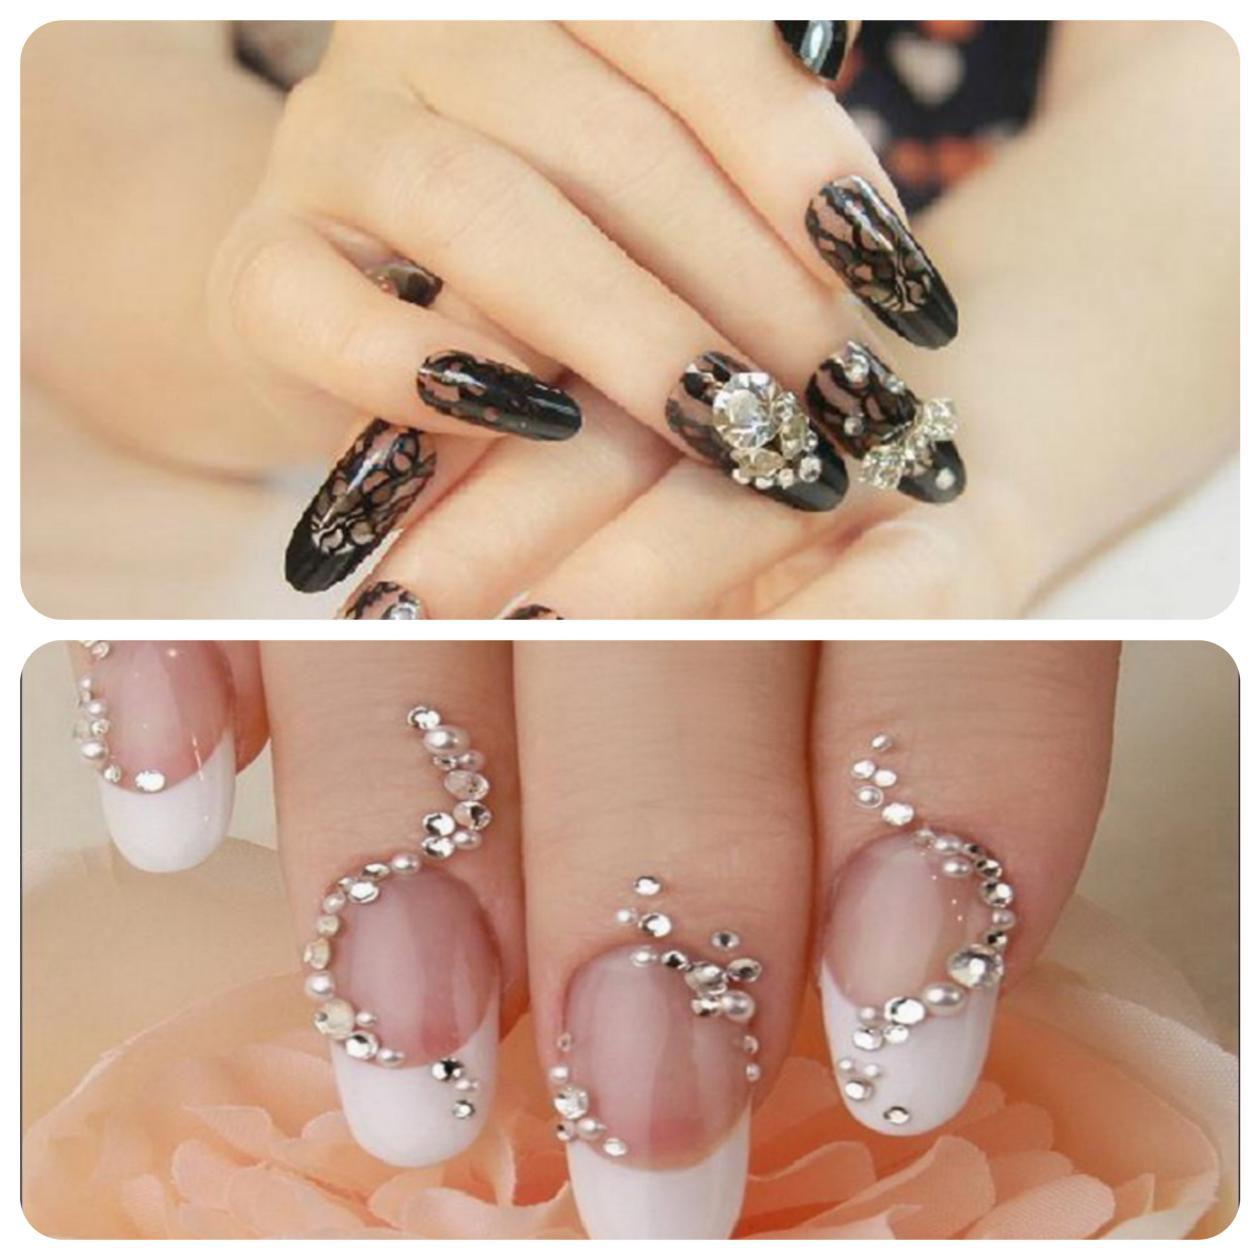 Well_decorated_nail_art